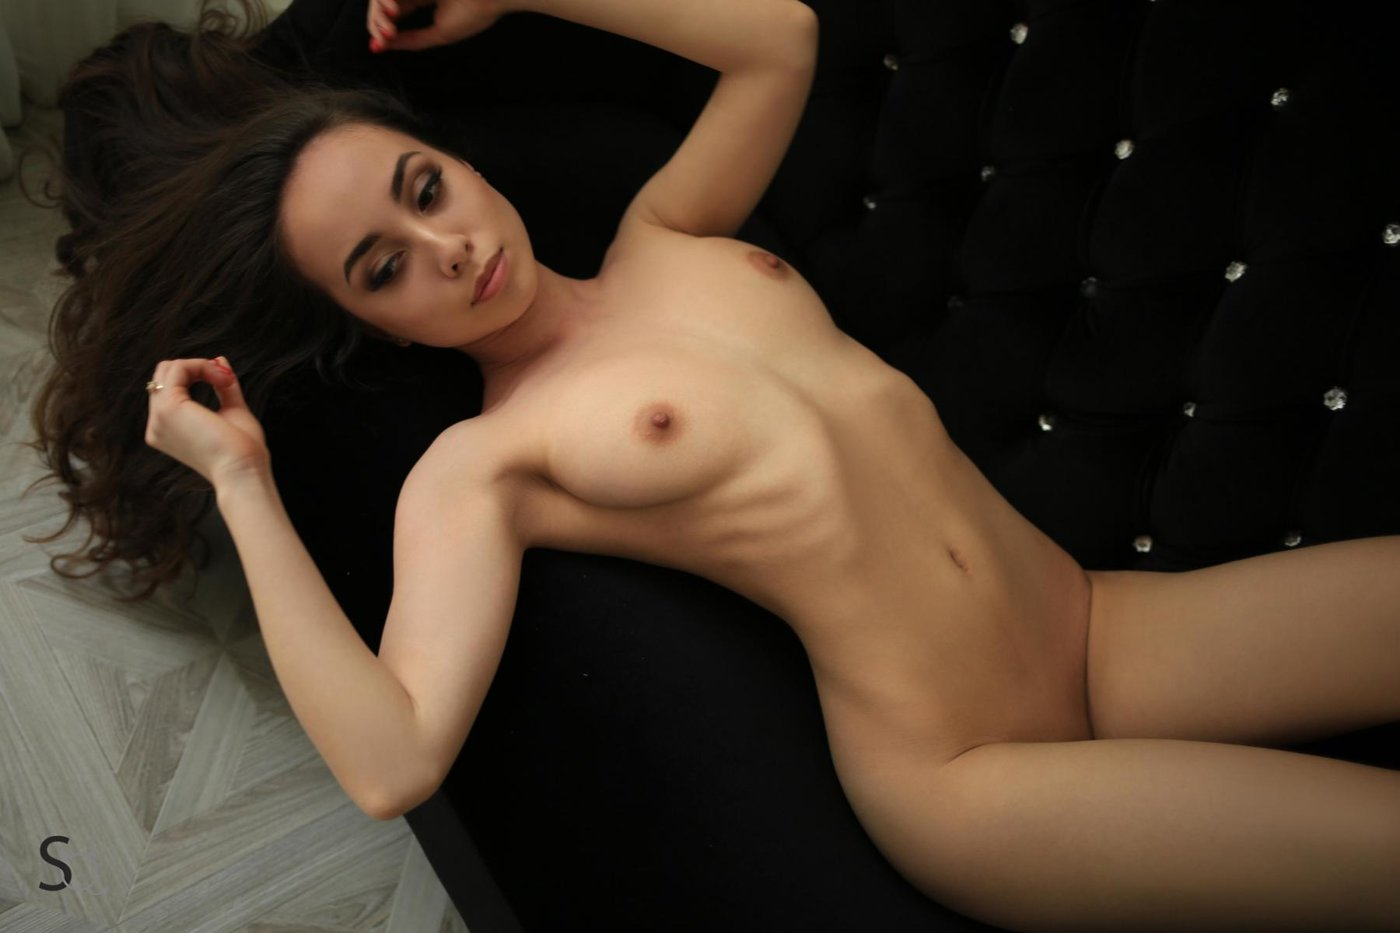 Long haired brunette with a big dildo 5